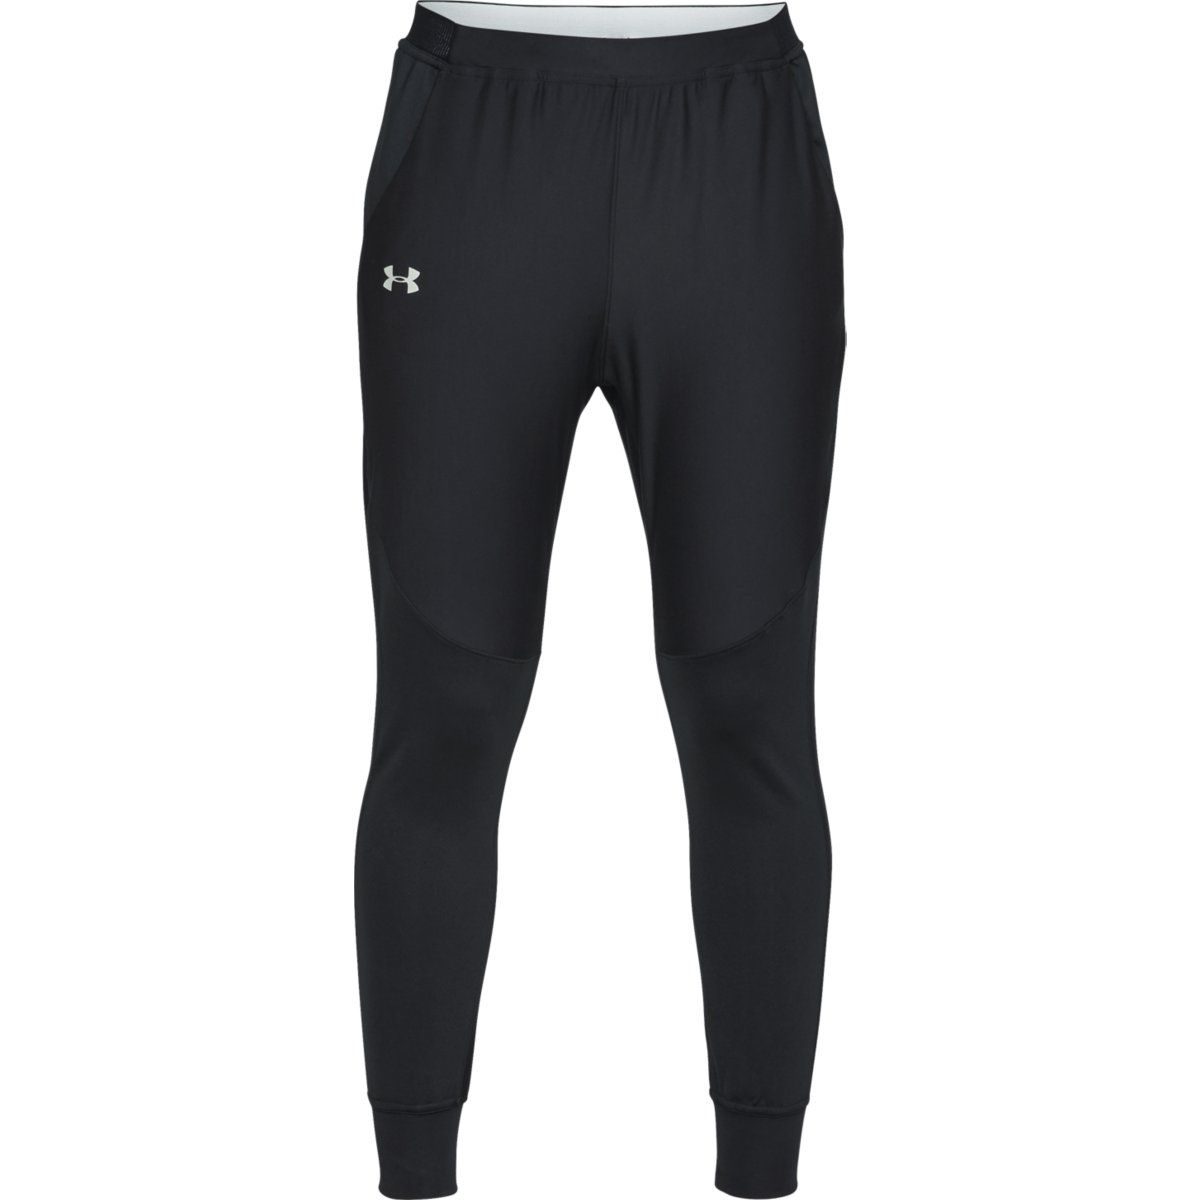 Under Armour Women's ColdGear Reactor Run Jogger   Sweatpants